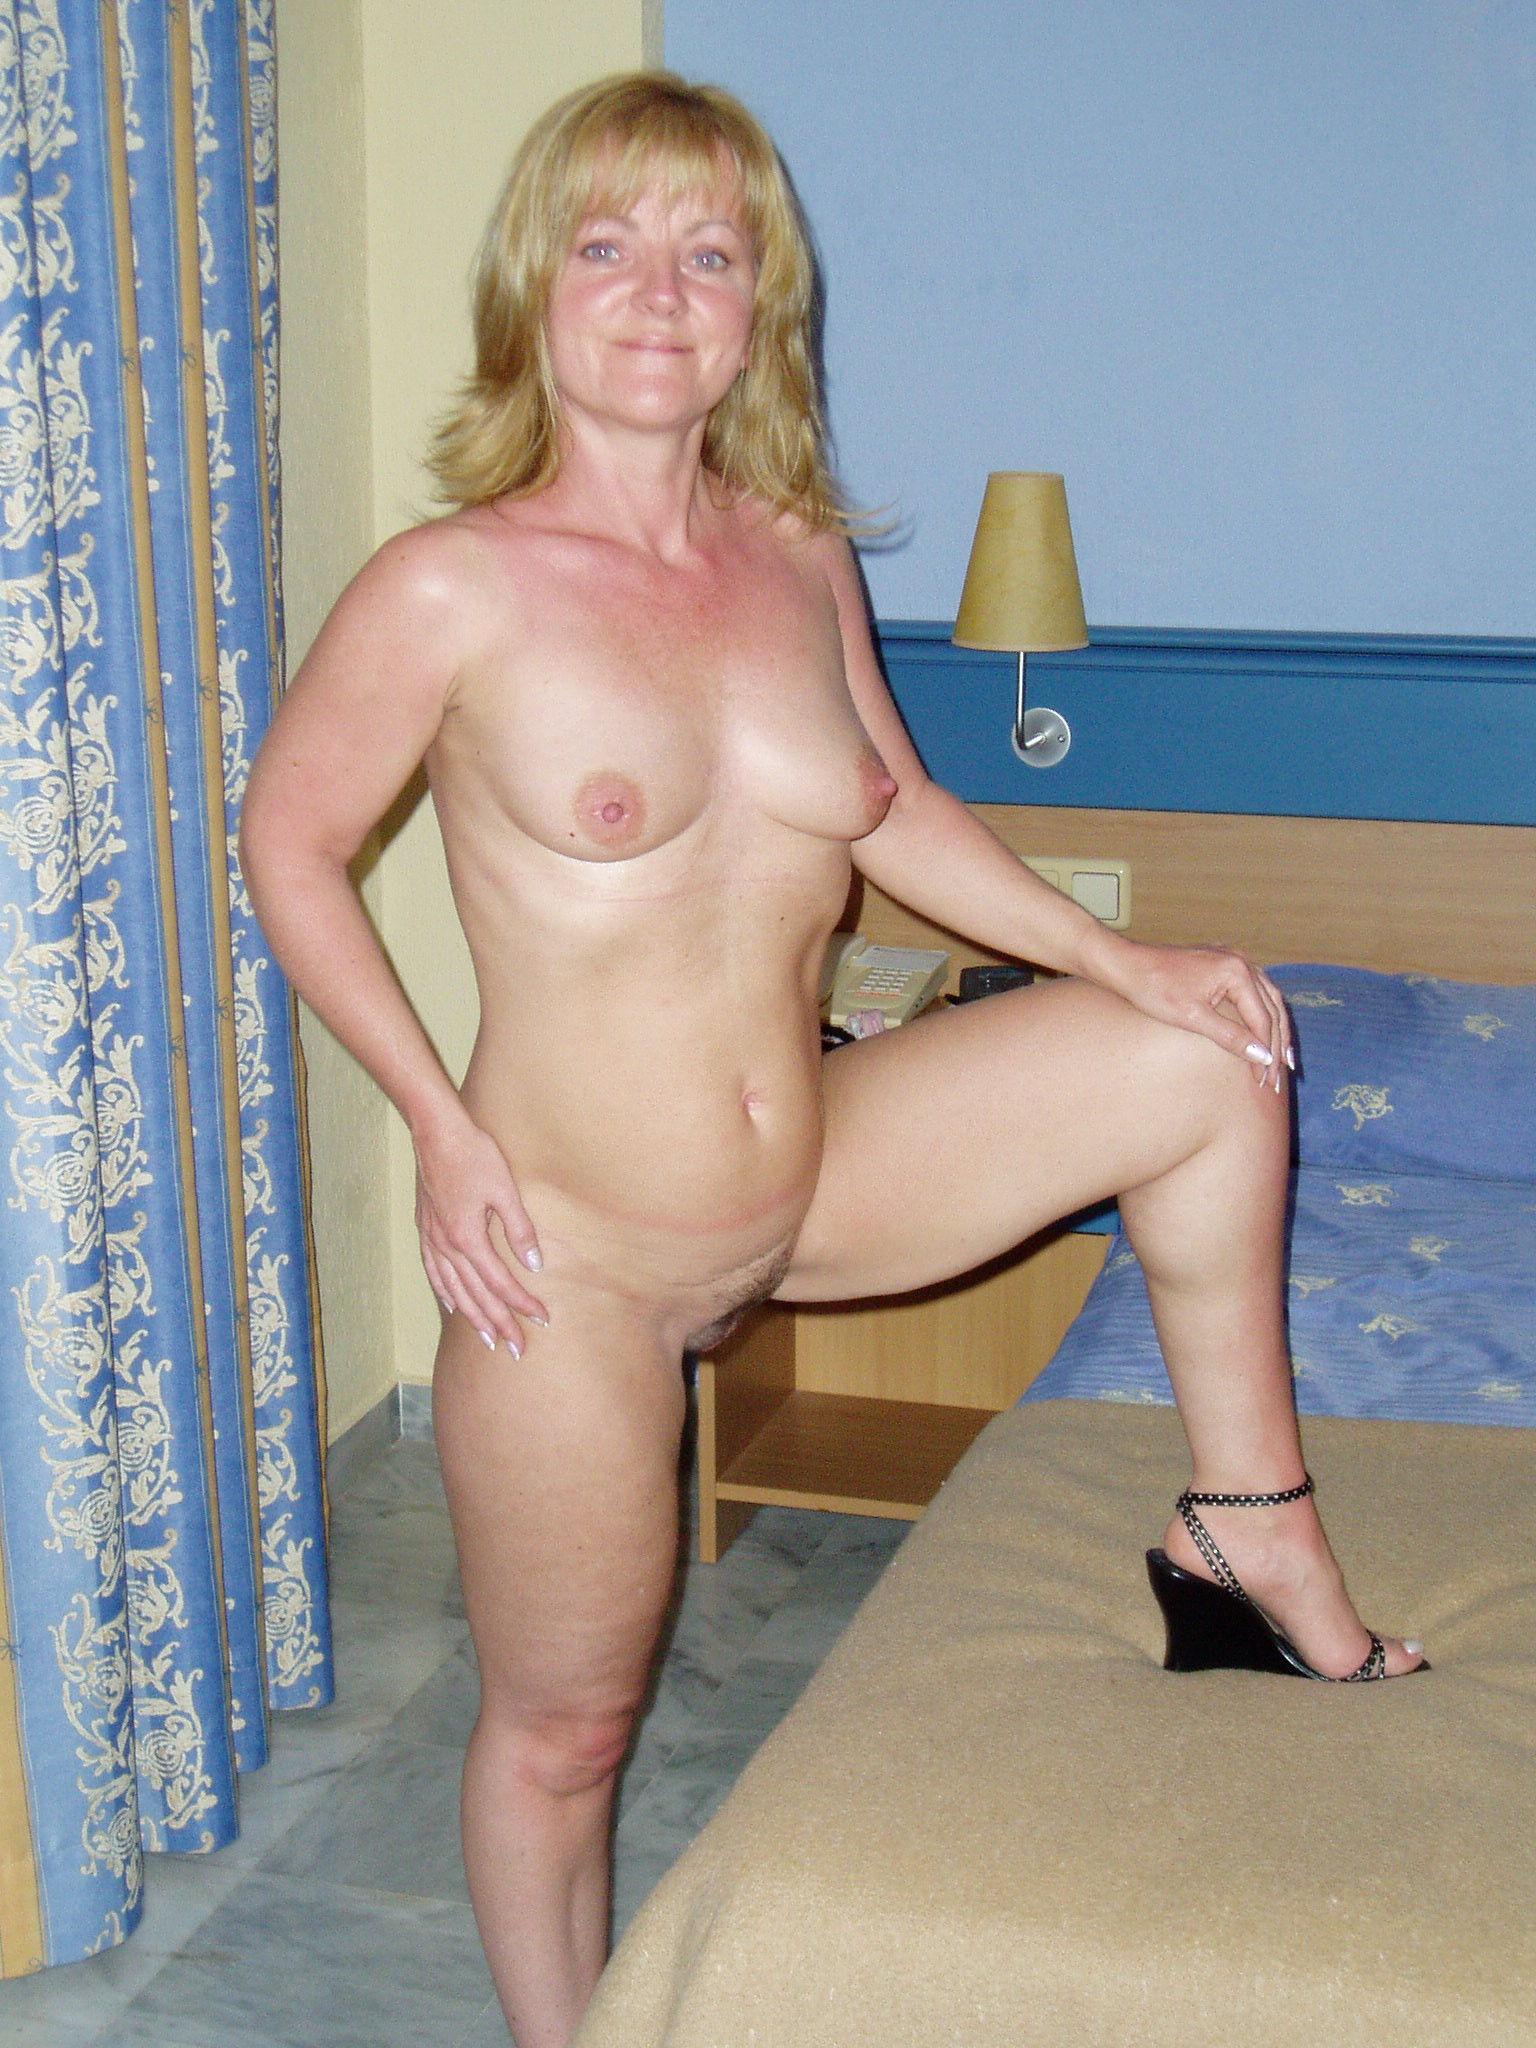 Free ameture chubby milf videos